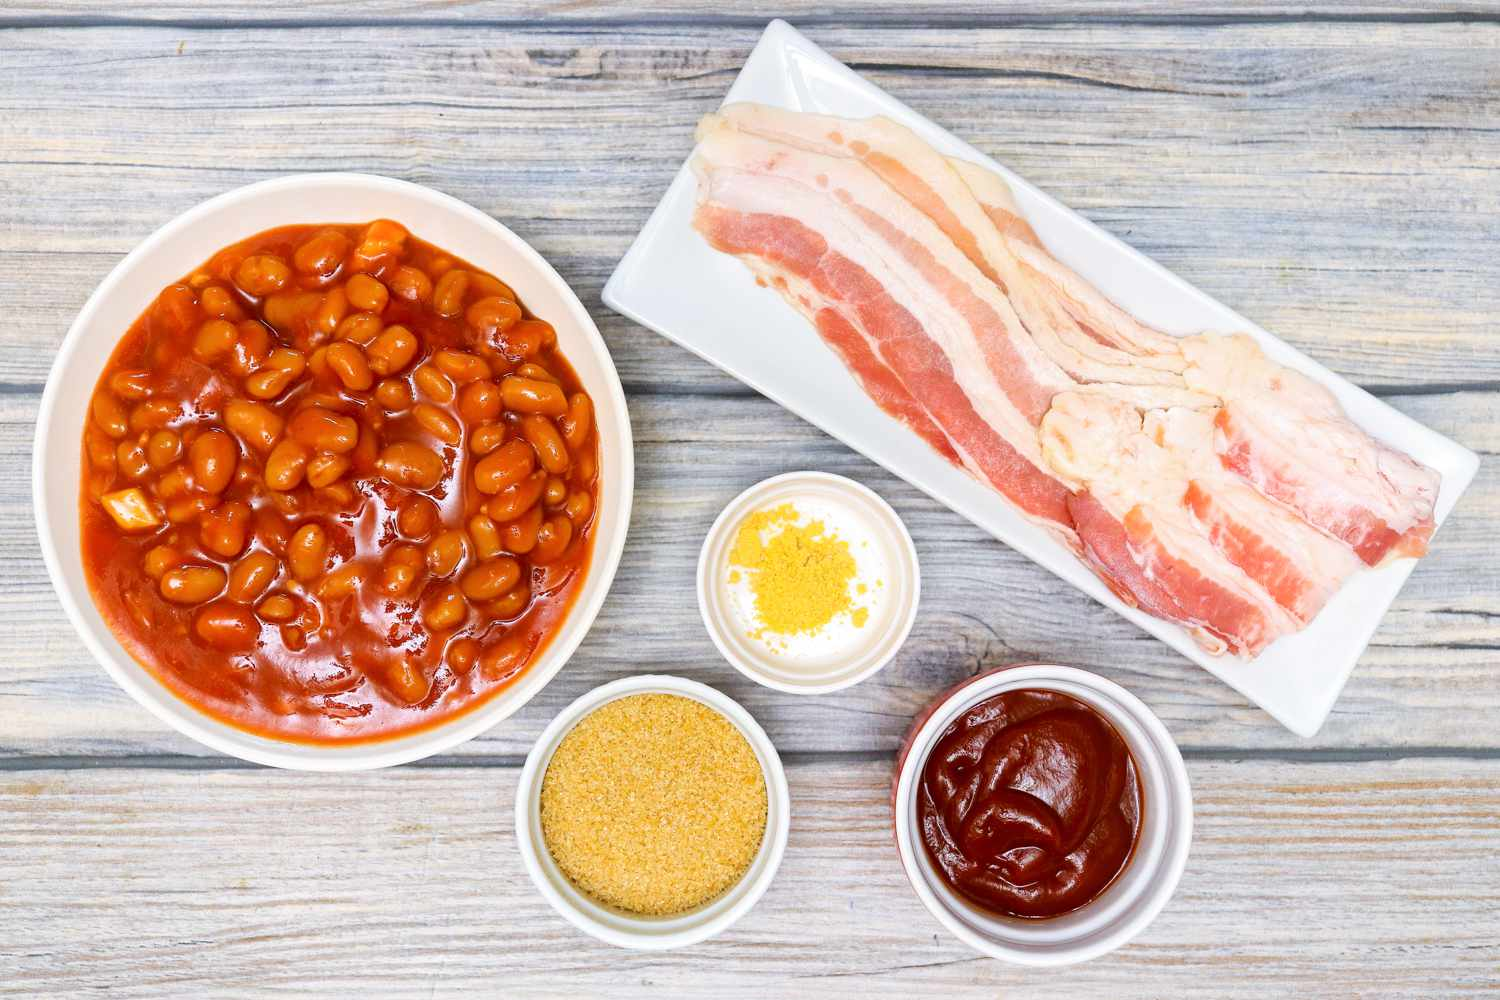 Ingredients for slow-cooker beans with bacon